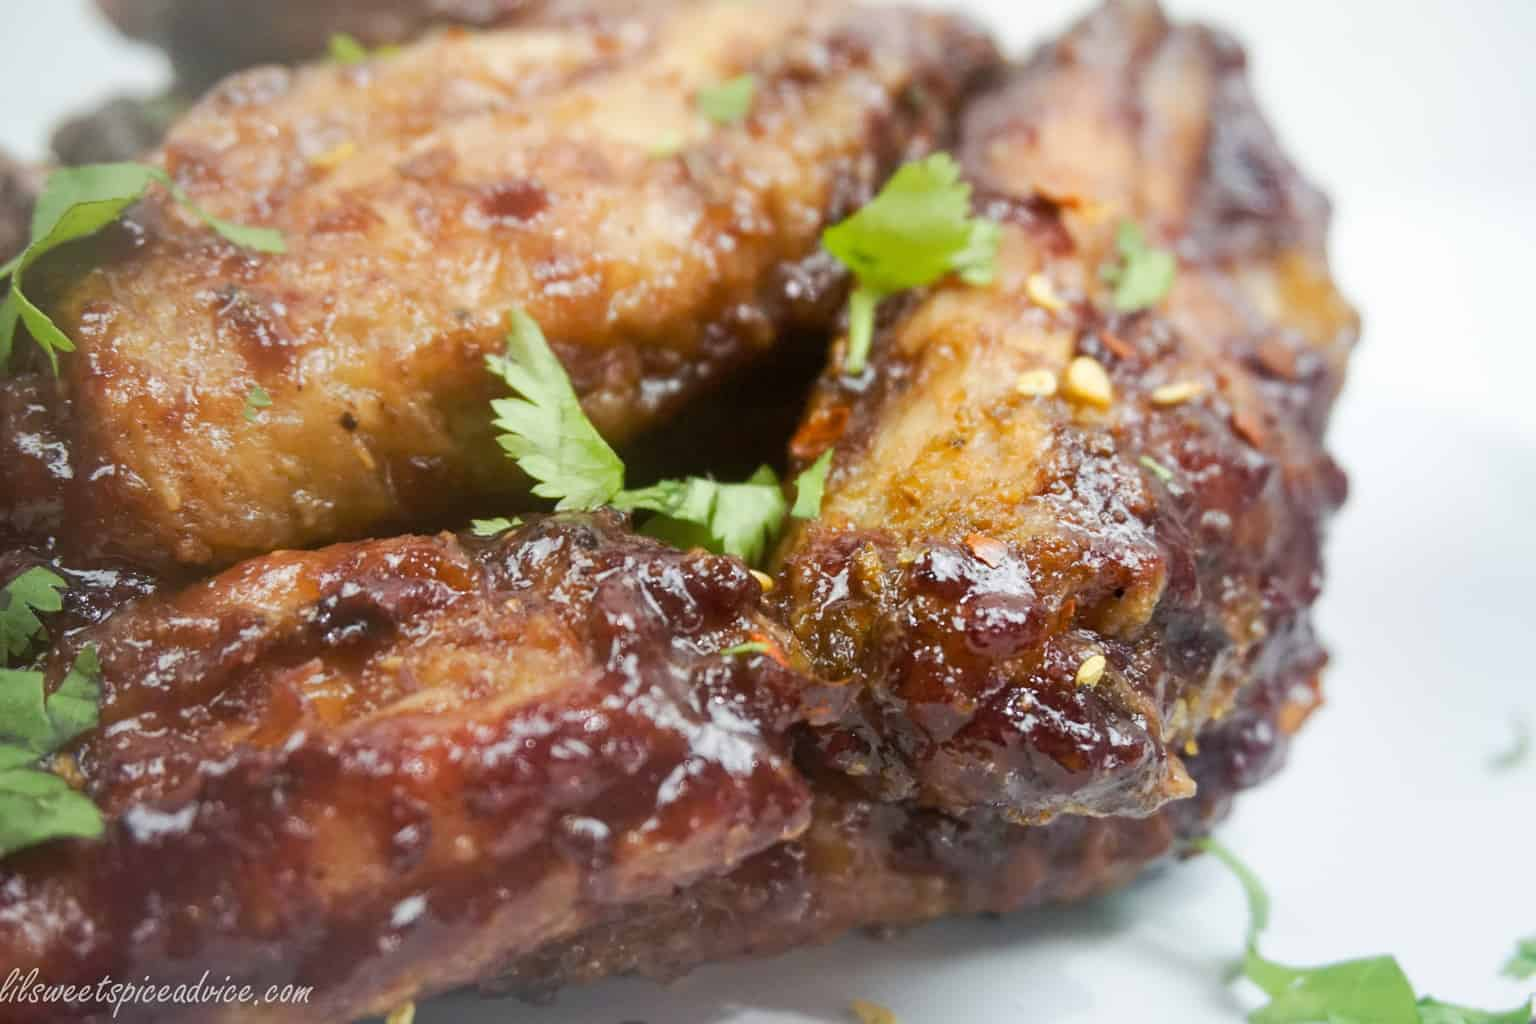 Spicy Cherry Glazed Chicken Wings--These Spicy Cherry Glazed Chicken Wings will make you forget all about BBQ sauce wings. Oven baked crispy chicken wings are tossed in homemade spiced cherry glaze and red pepper flakes.--lilsweetspiceadvice.com